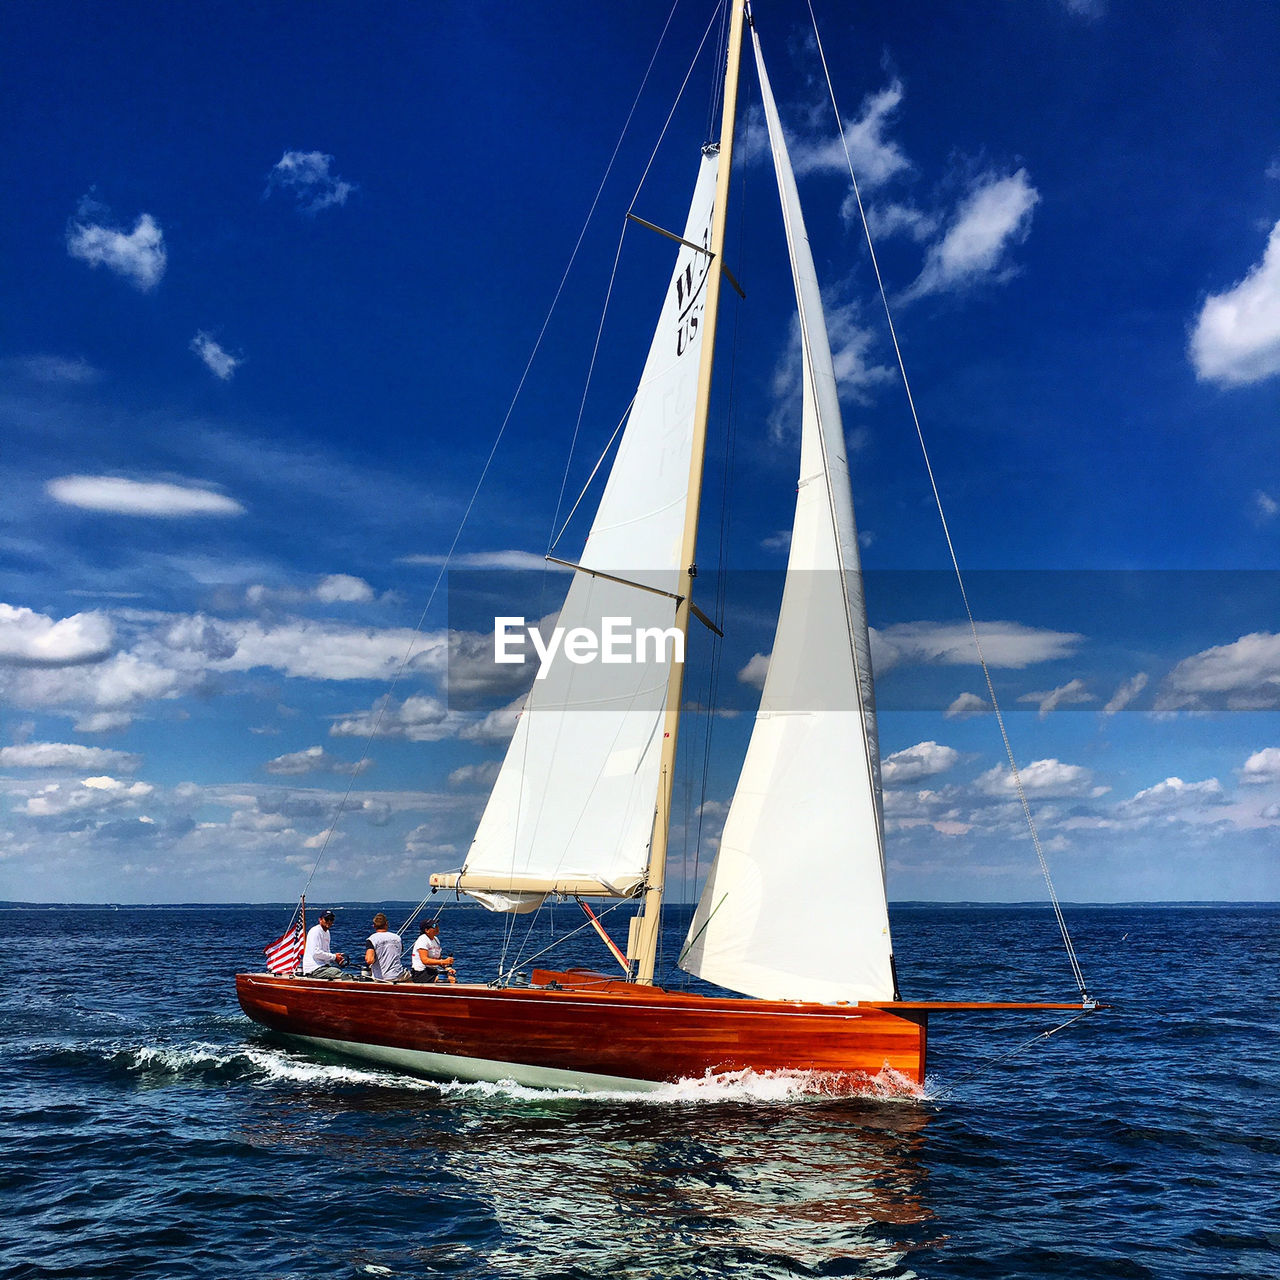 nautical vessel, transportation, sea, sky, mode of transport, mast, cloud - sky, sailboat, water, boat, day, no people, outdoors, nature, sailing, horizon over water, blue, beauty in nature, sailing ship